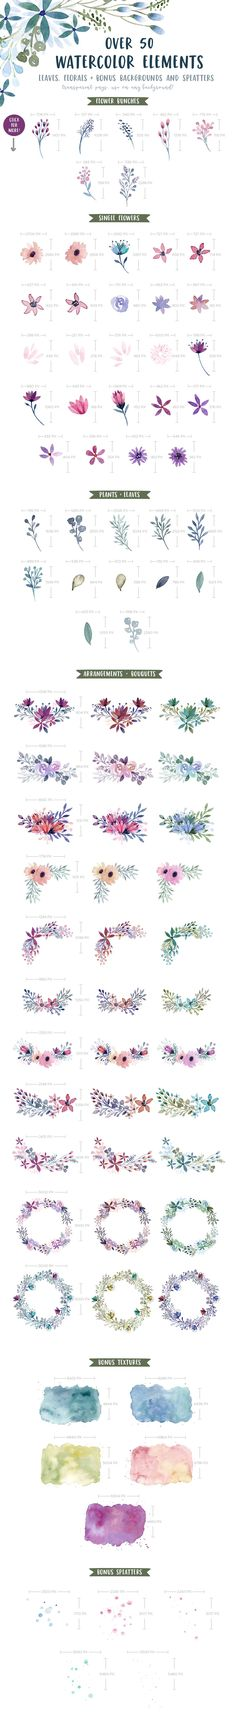 Watercolor Leaves and Florals Kit - useful for wedding invitations, garden party invites, and other flower decoration needs.